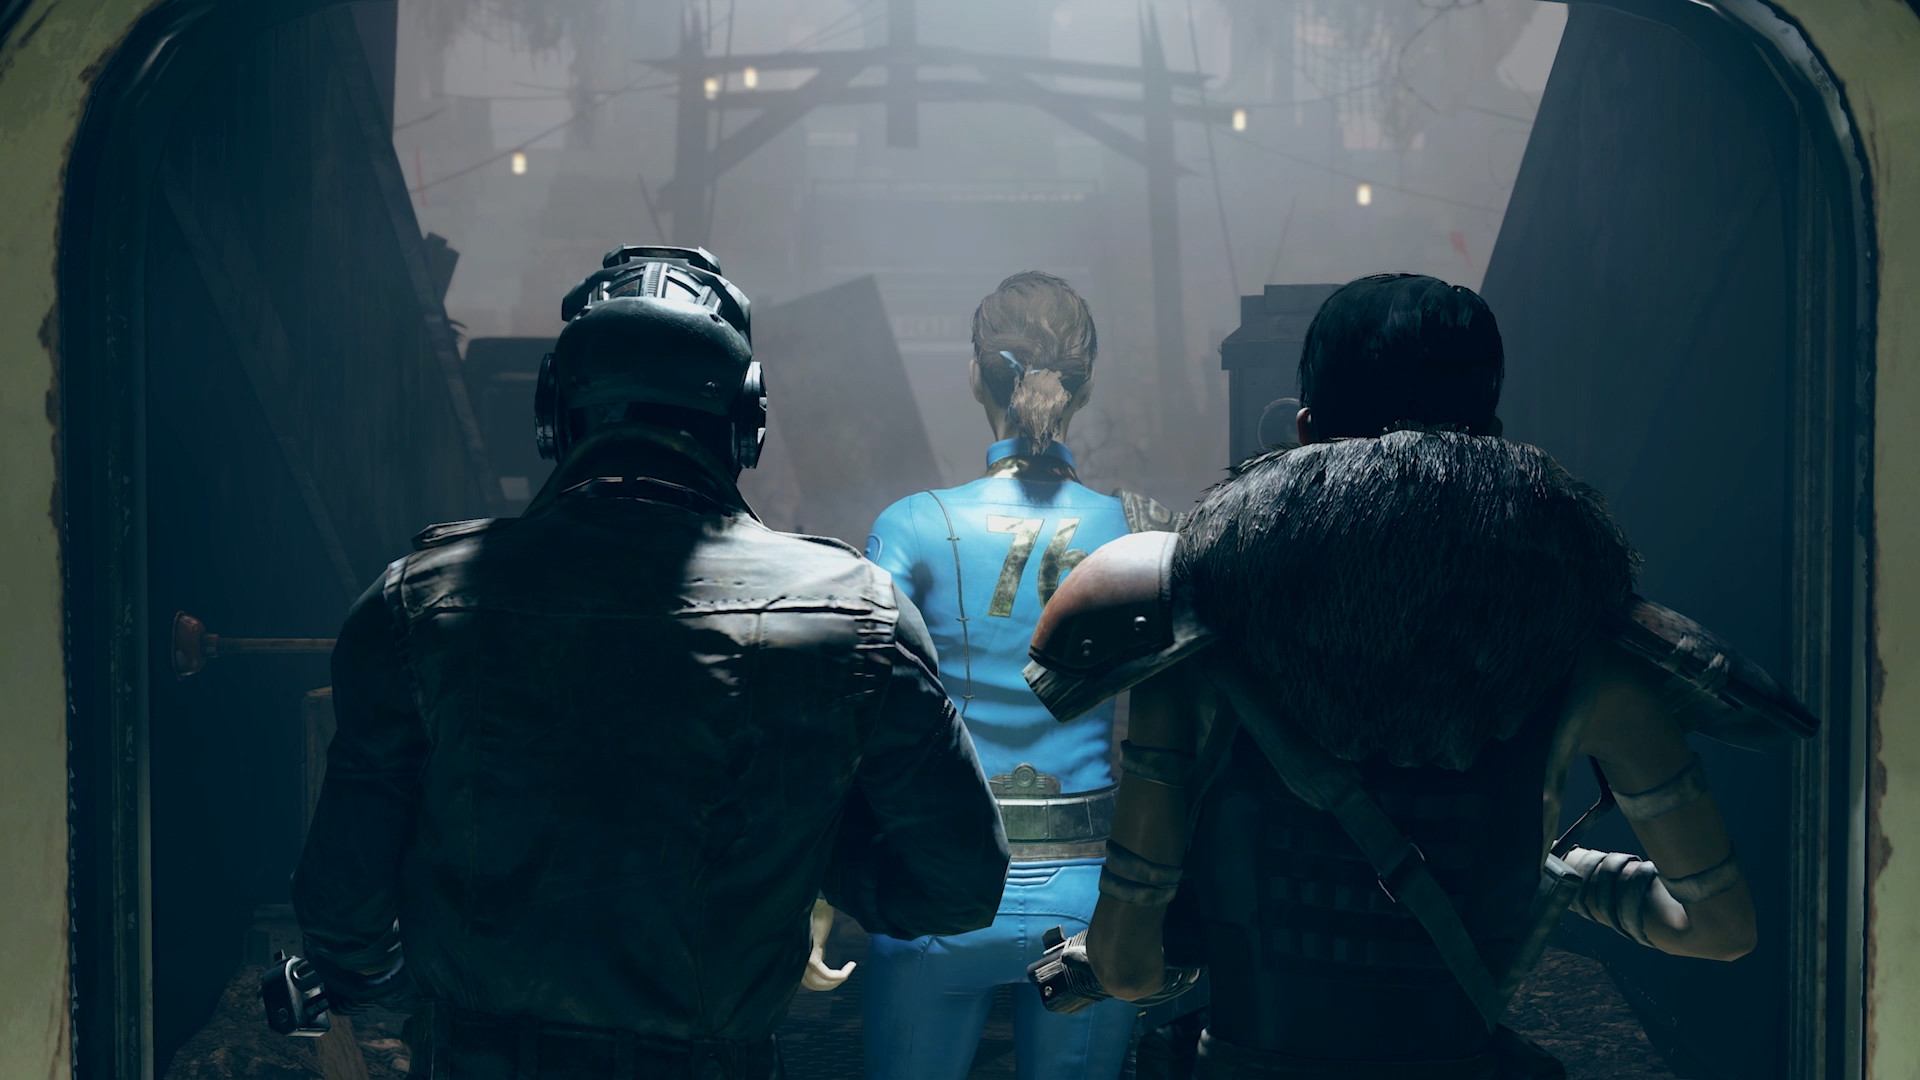 Bethesda is changing some aspects of Fallout 76 based on fan feedback screenshot